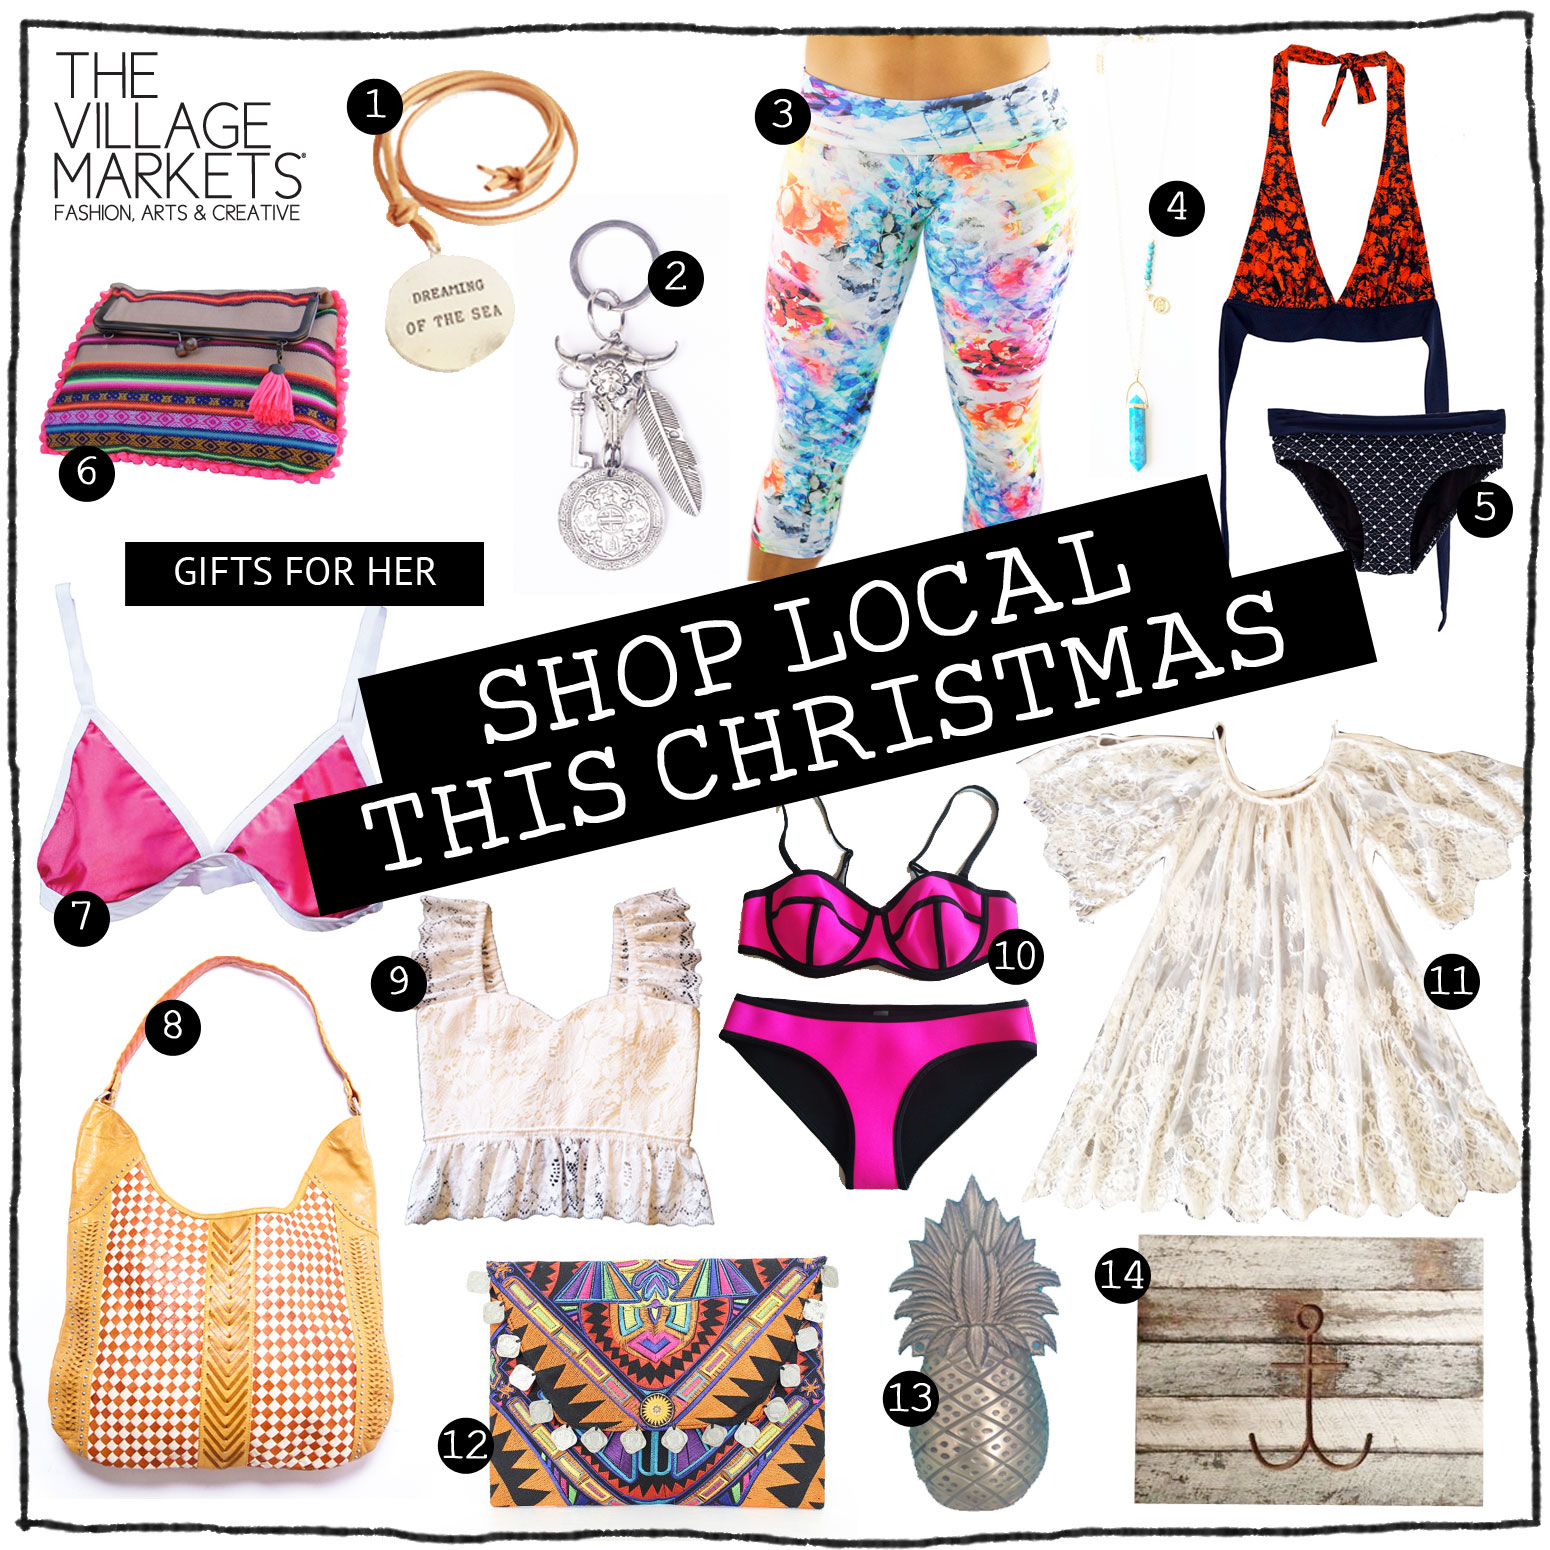 Christmas Gift Guide - For Her - The Village Markets